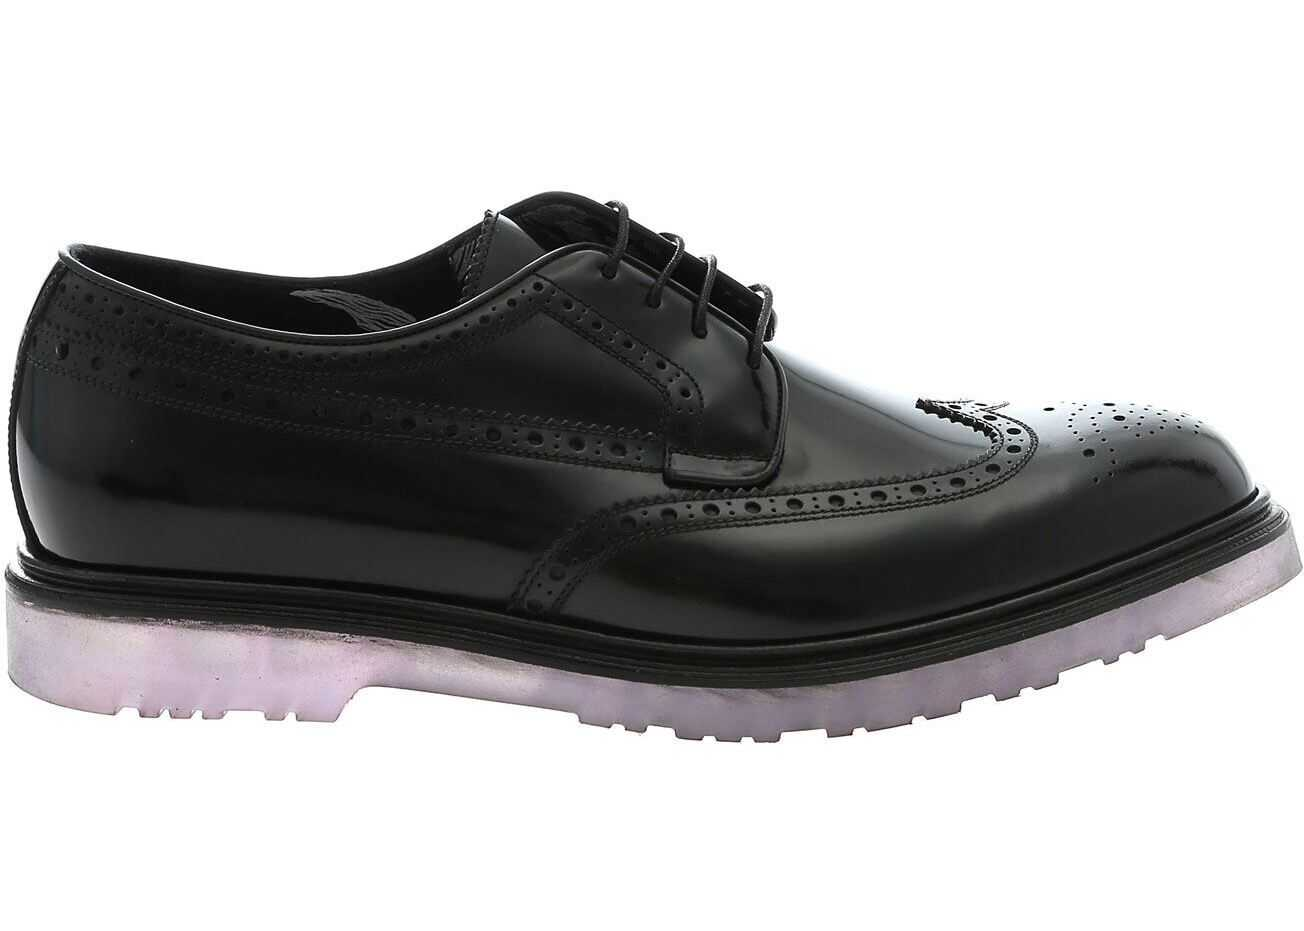 Paul Smith Crispin Derby Shoes In Black Black